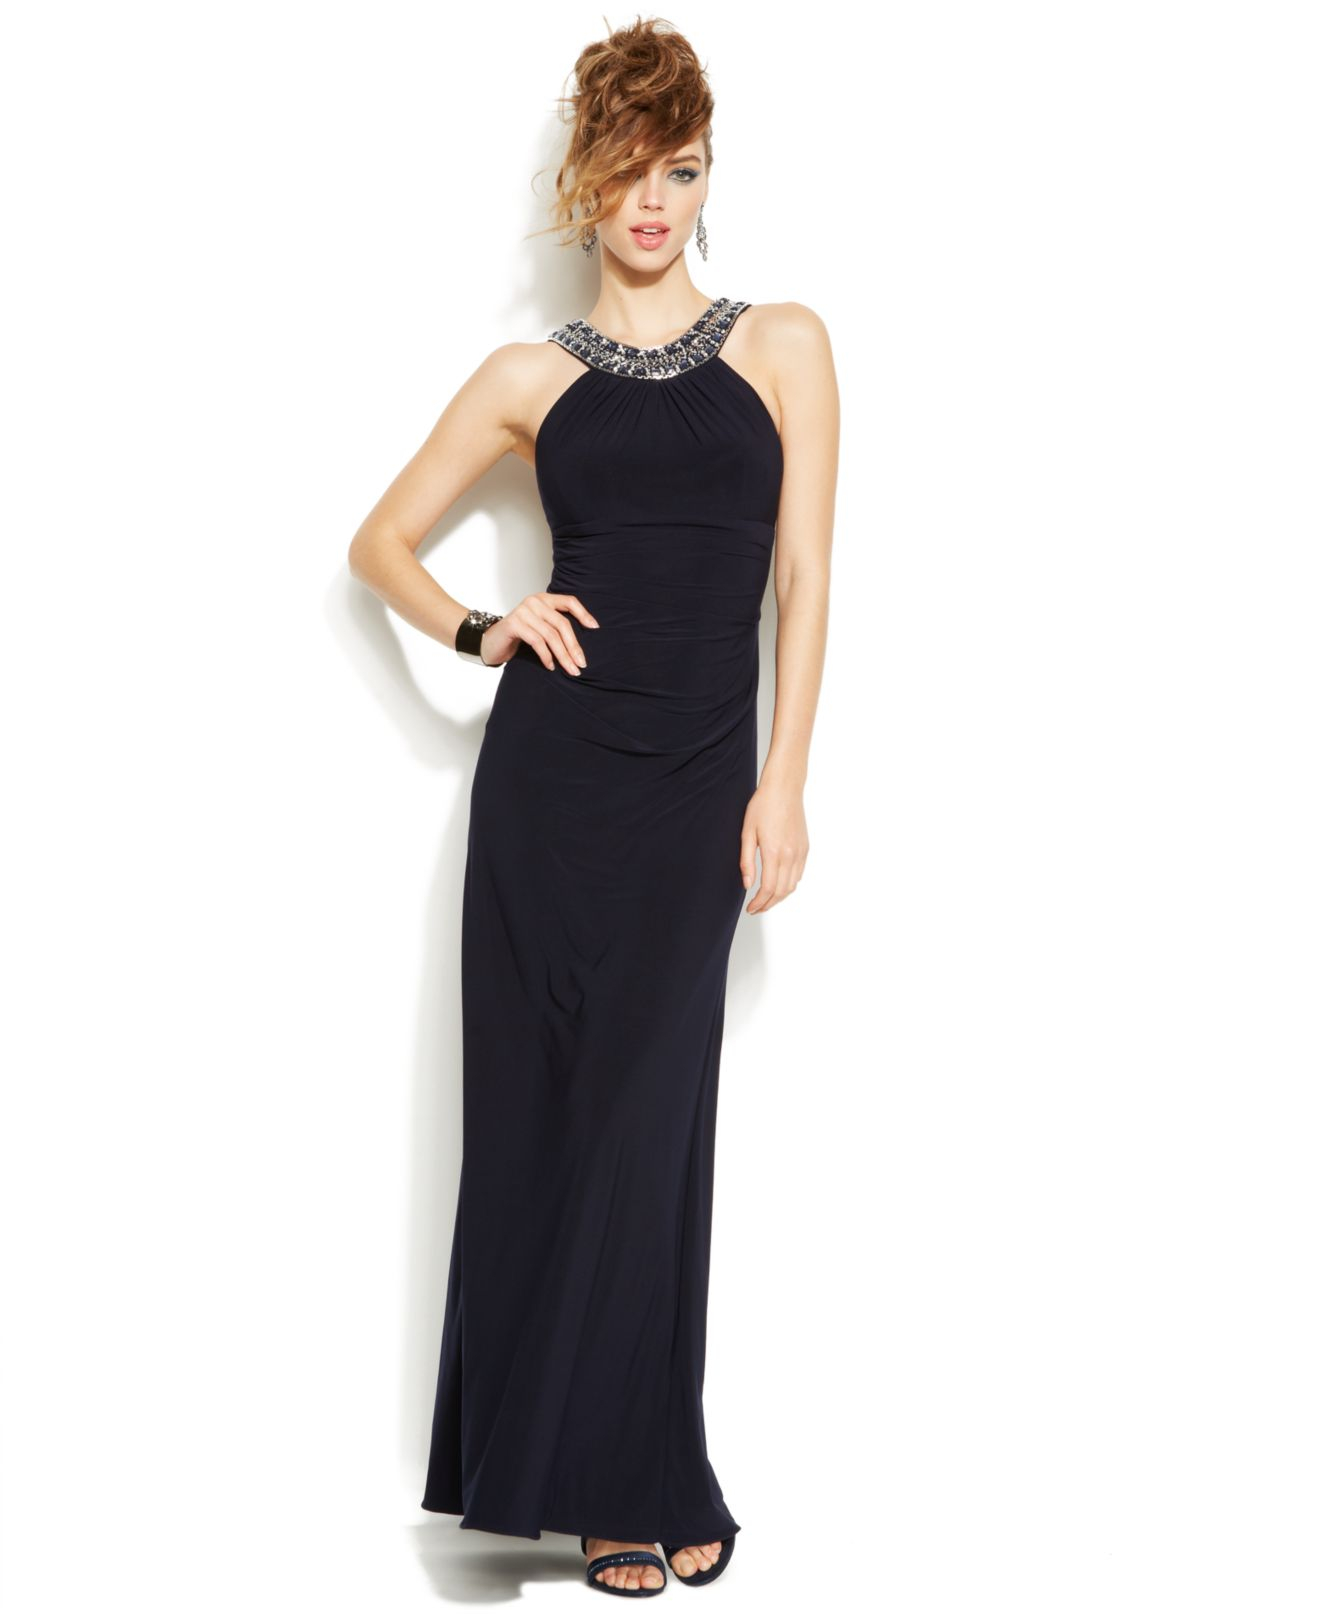 Dresses For Special Occasions Canada: Xscape Bead-trim Ruched Halter Gown In Blue